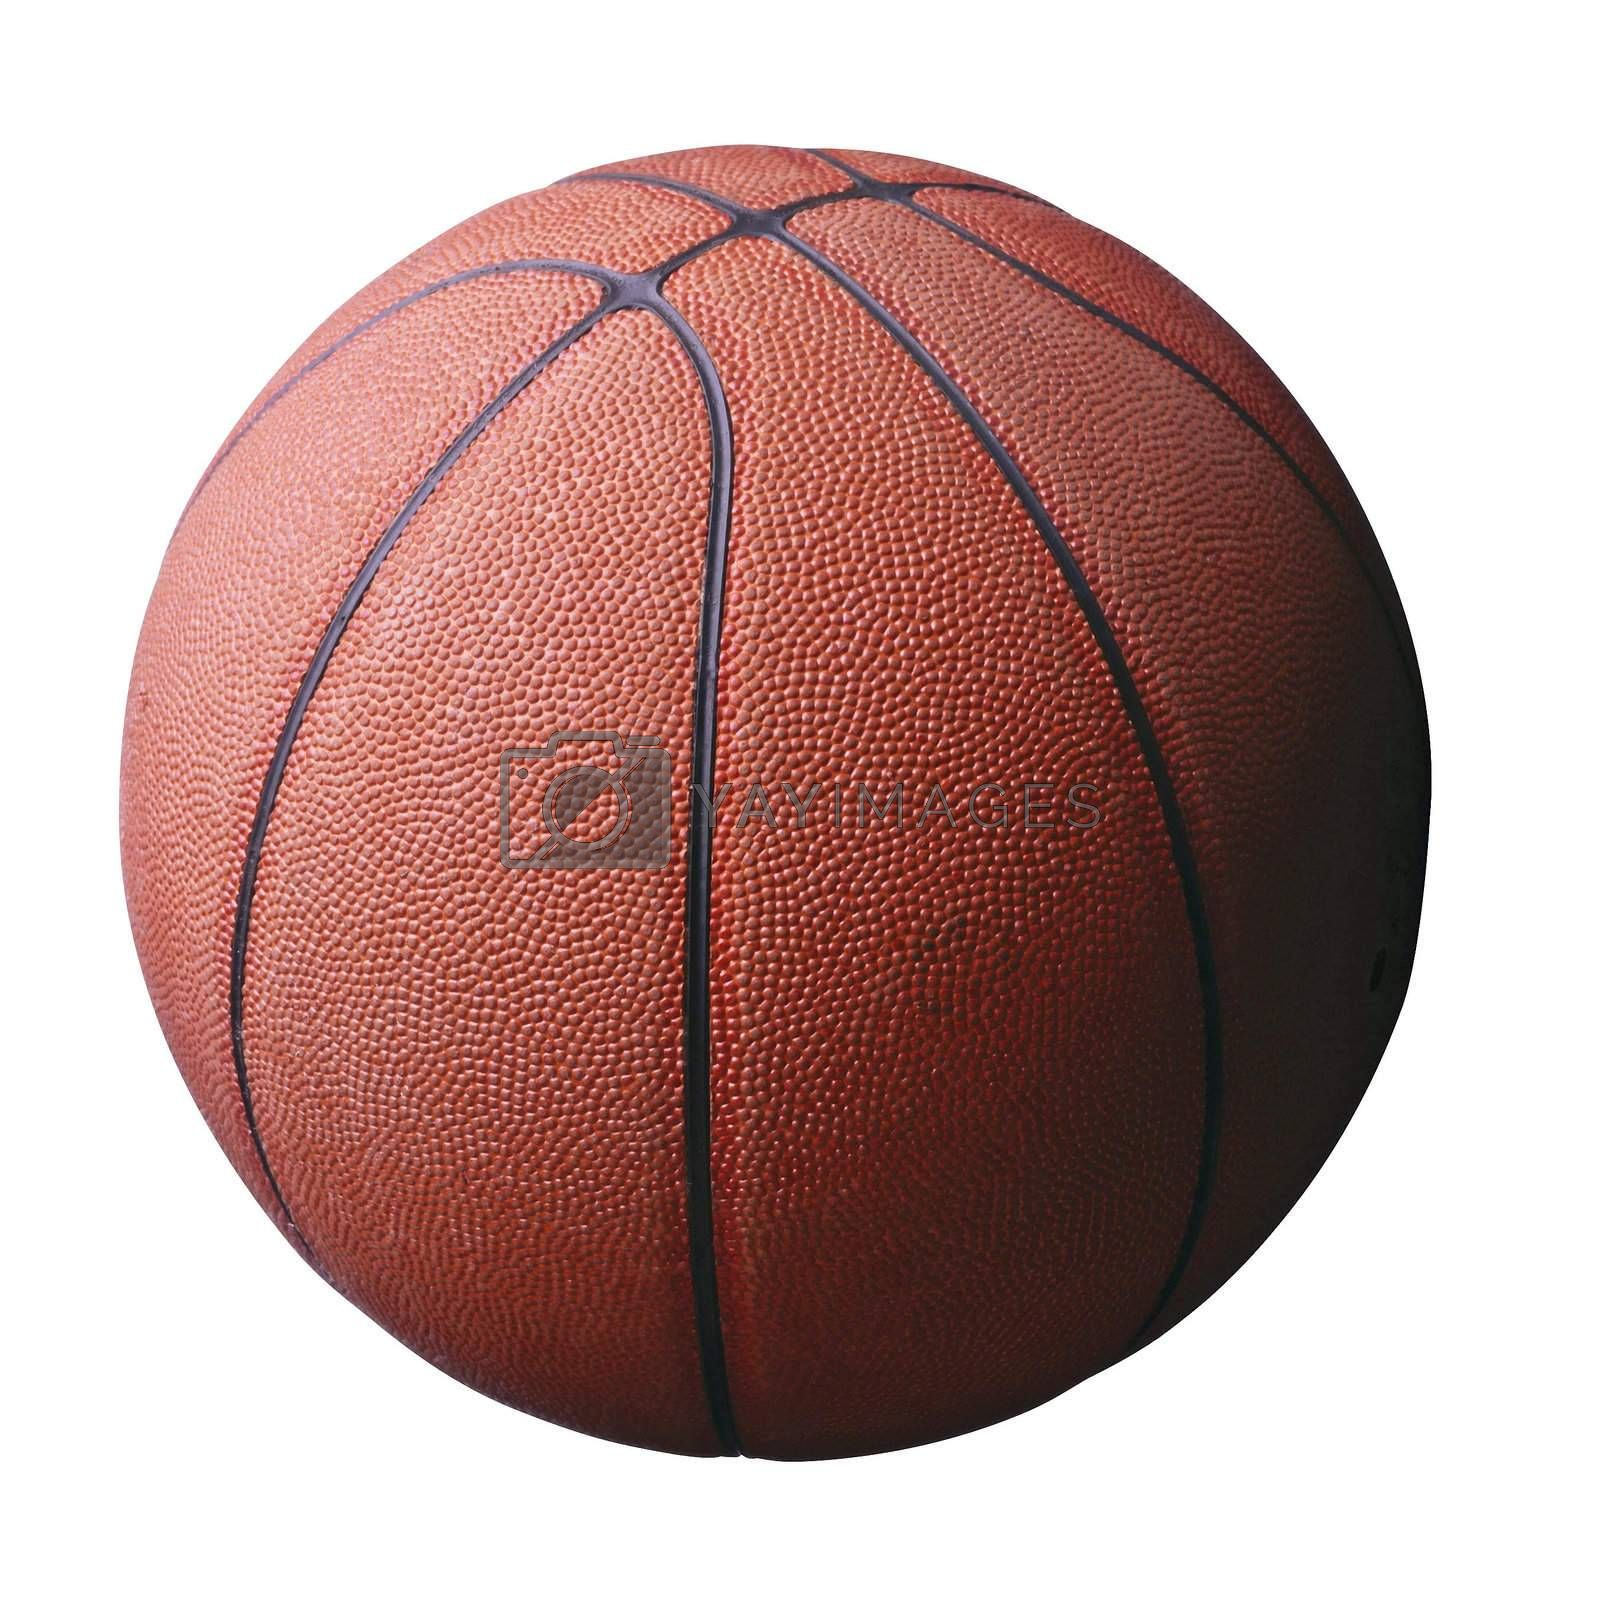 Basketball isolated - with white background